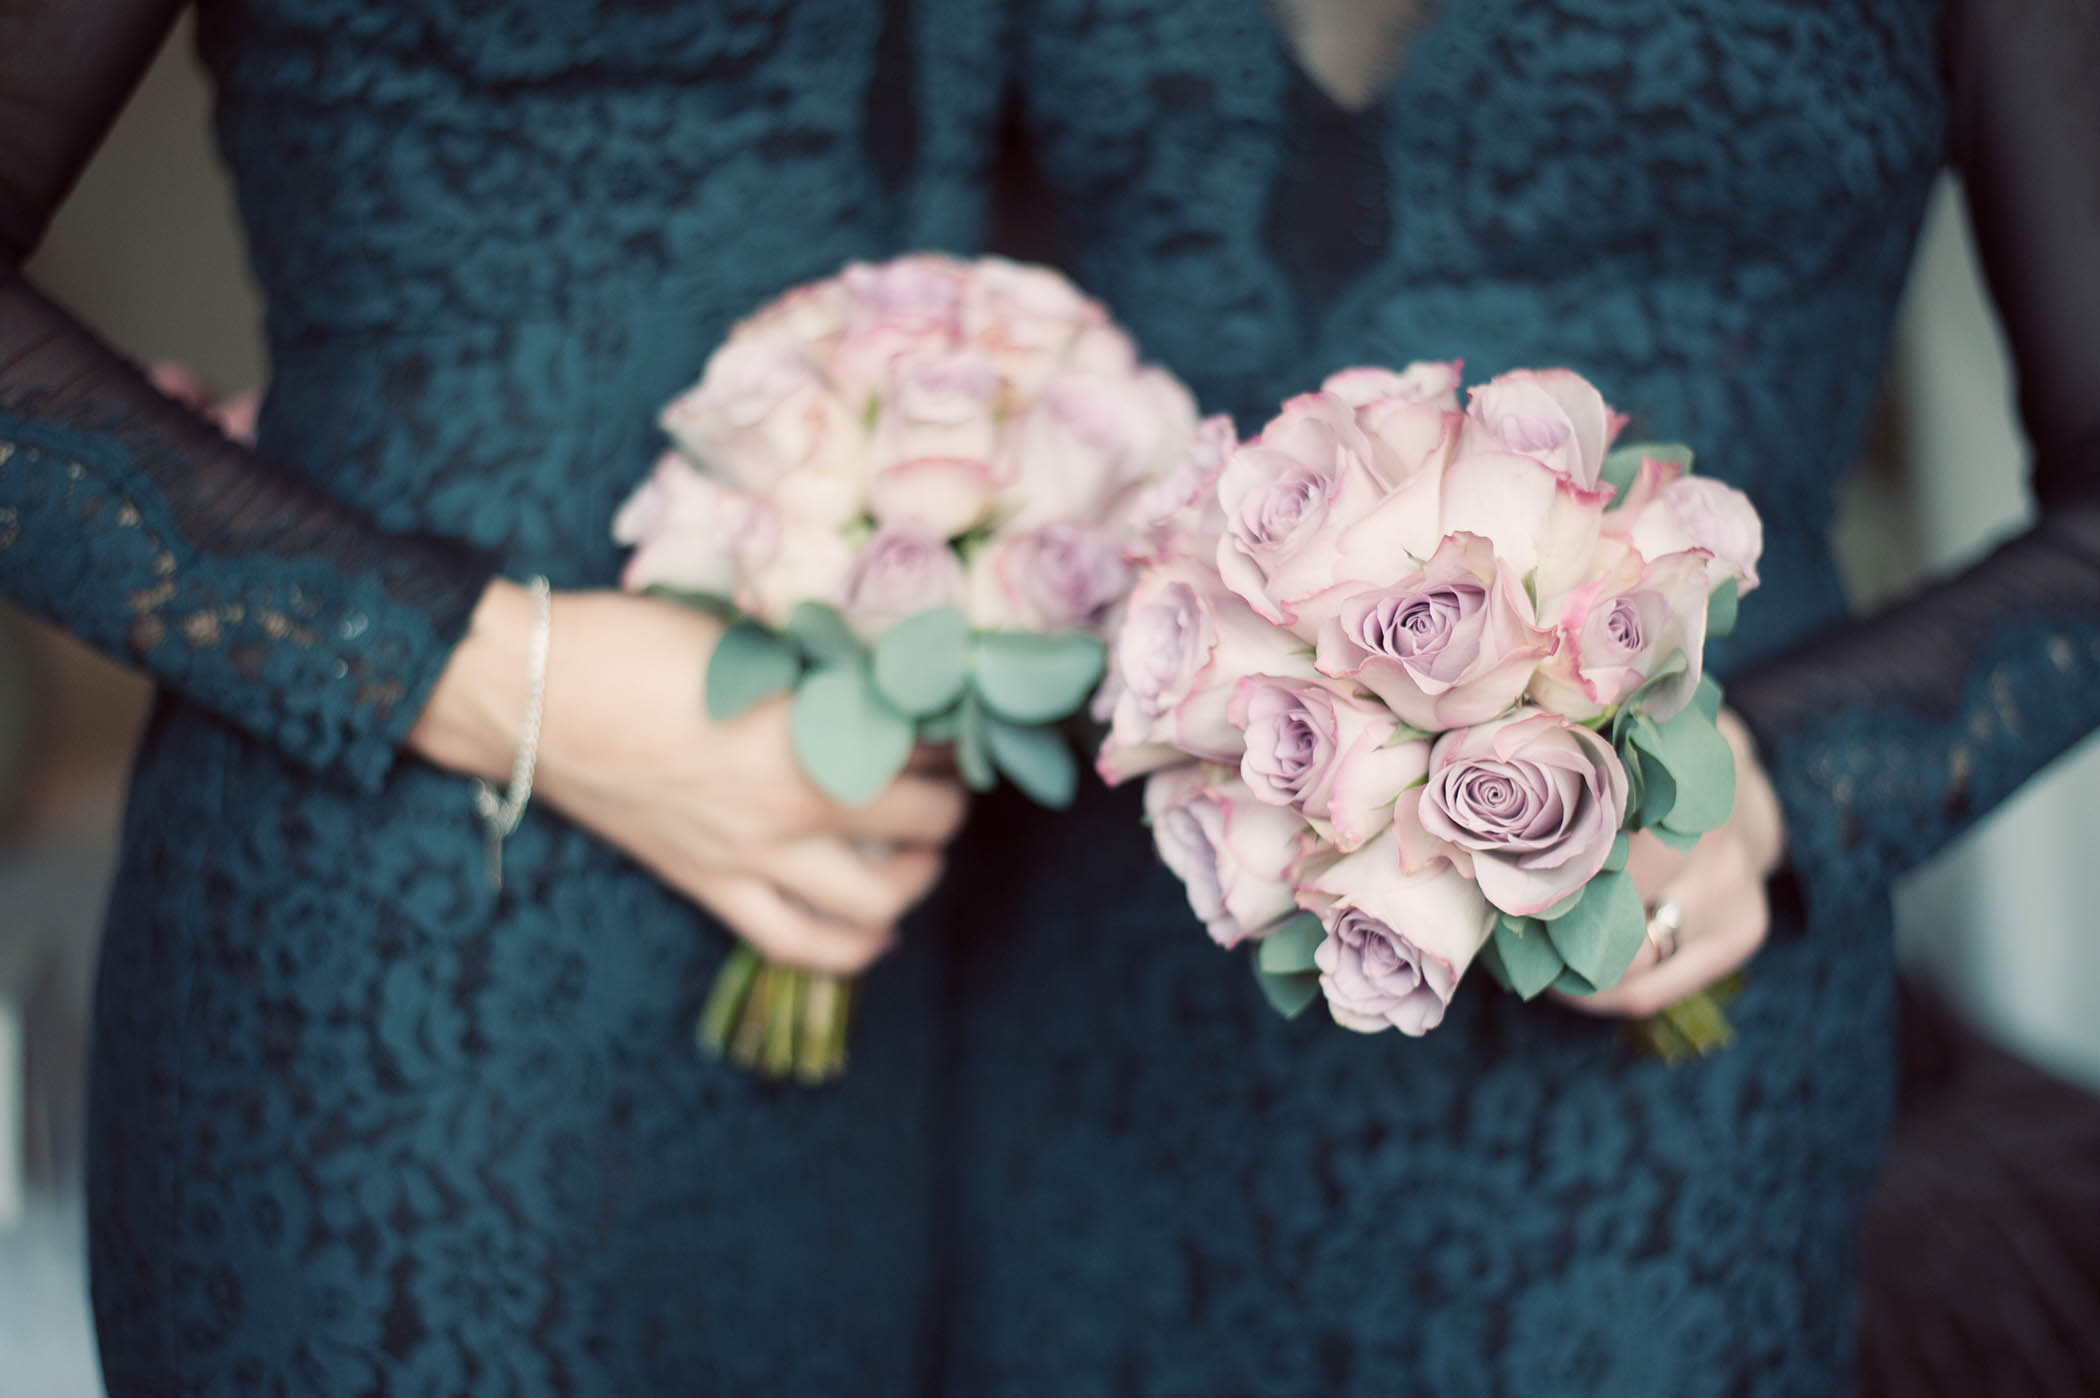 Fallon and Byrne wedding 2014, bridesmaids bouquets